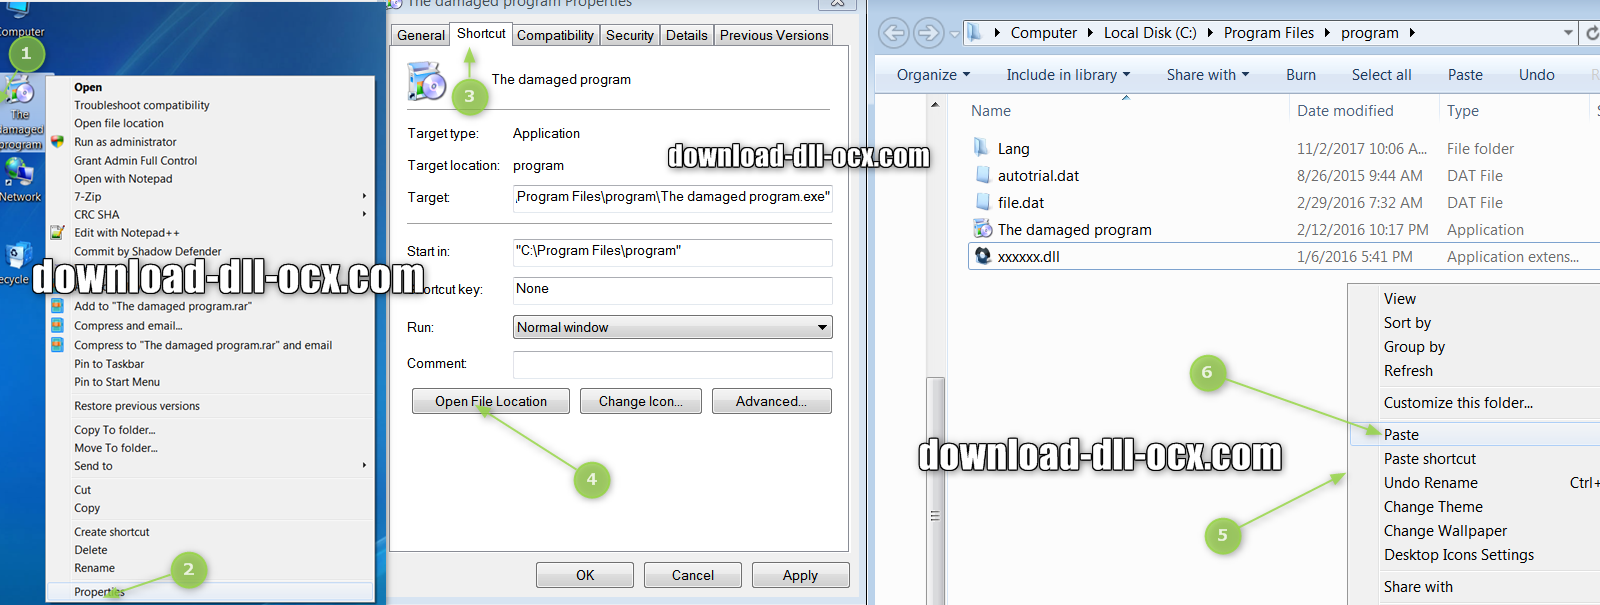 how to install PrxerDrv.dll file? for fix missing